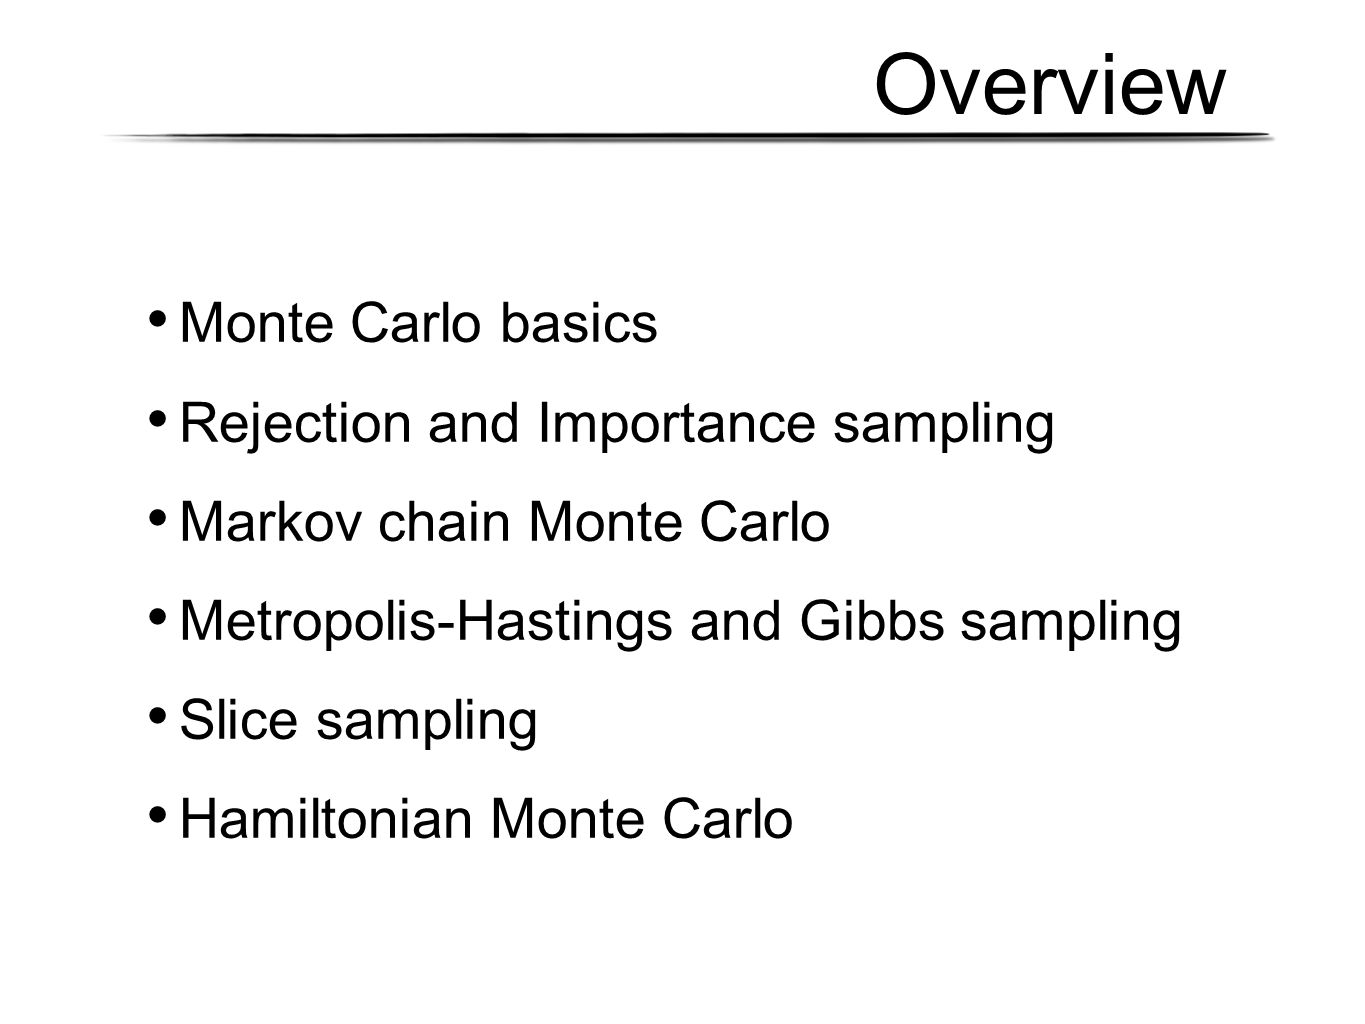 Overview Monte Carlo basics Rejection and Importance sampling Markov chain Monte Carlo Metropolis-Hastings and Gibbs sampling Slice sampling Hamiltoni